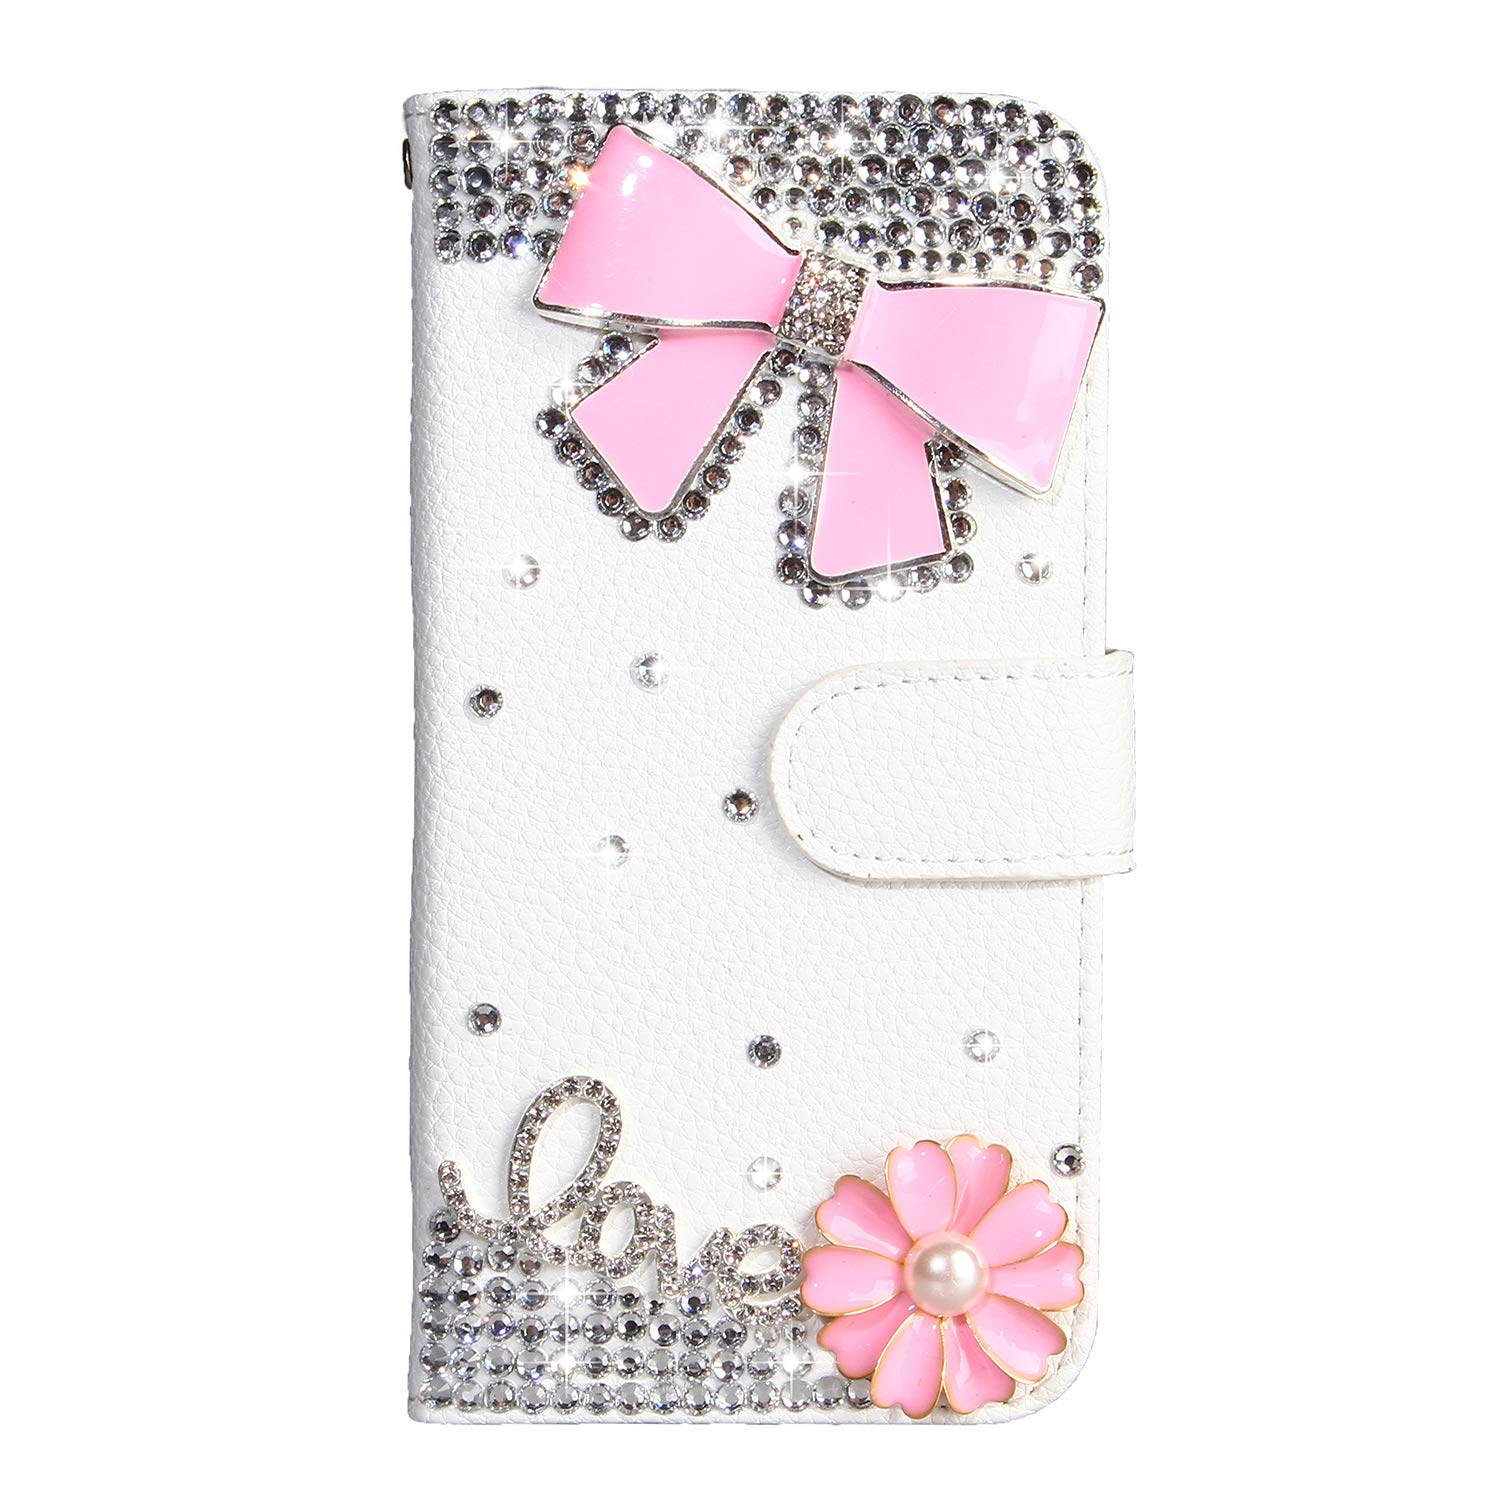 Crystal Wallet Case for Samsung Galaxy A40,Aoucase Stylish Luxury 3D Handmade Pink Bowknot Design Bling Pocket Purse Soft Rubber Stand White Leather Case with Black Dual-use Stylus by Aoucase